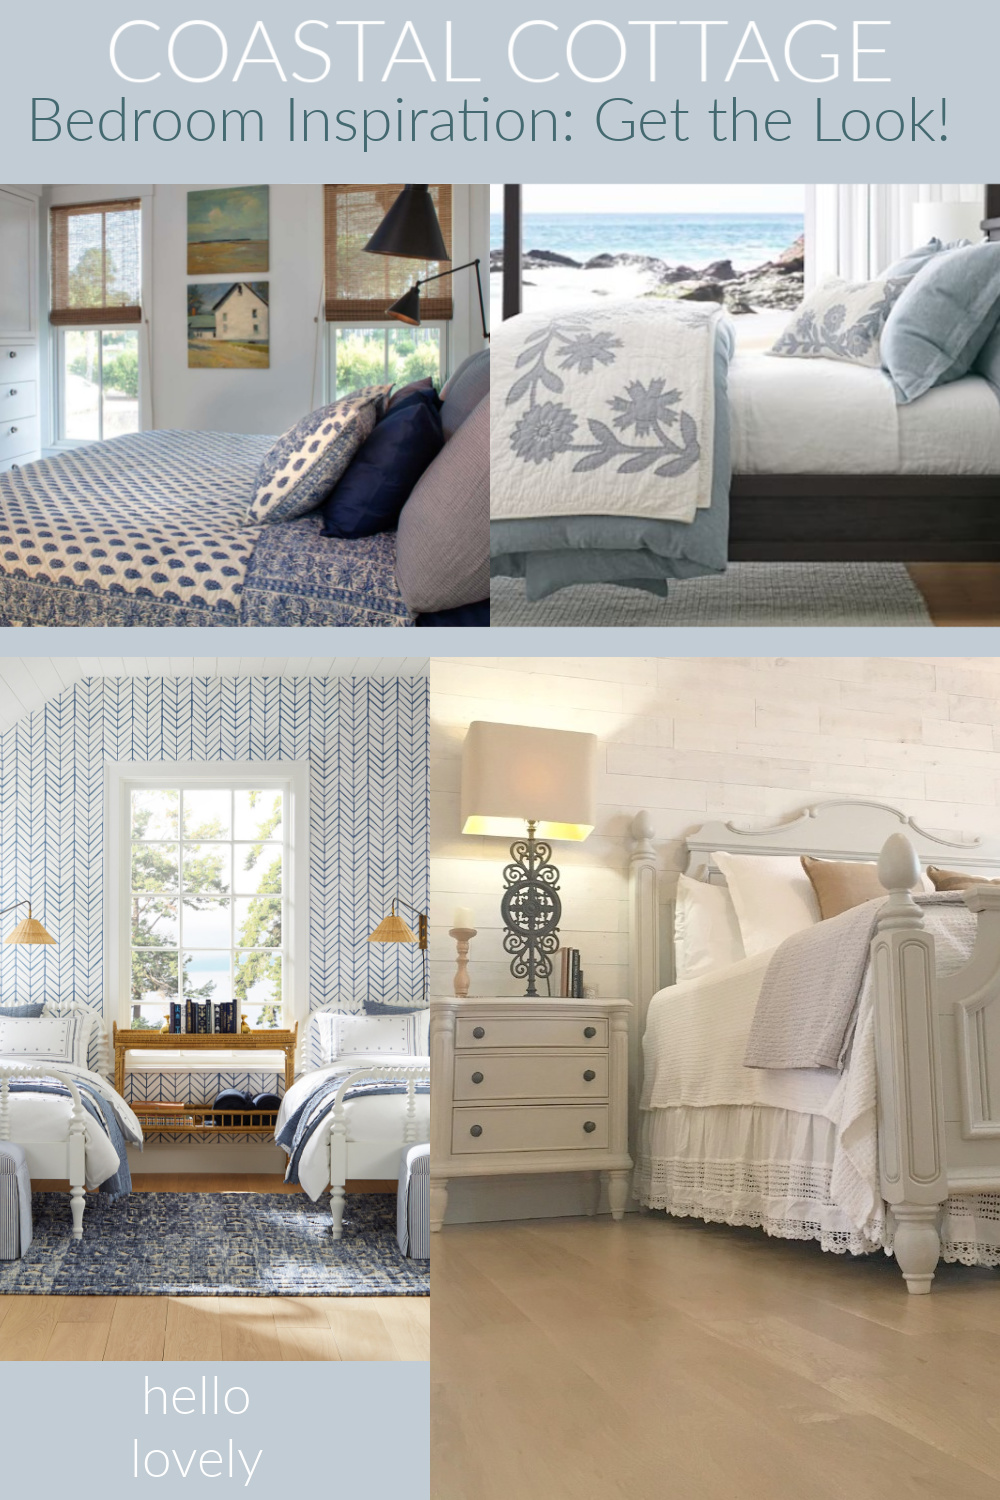 Coastal Cottage Bedroom Inspiration Get the Look on Hello Lovely Studio. #coastalcottage #getthelook #shopthelook #bedroomdecor